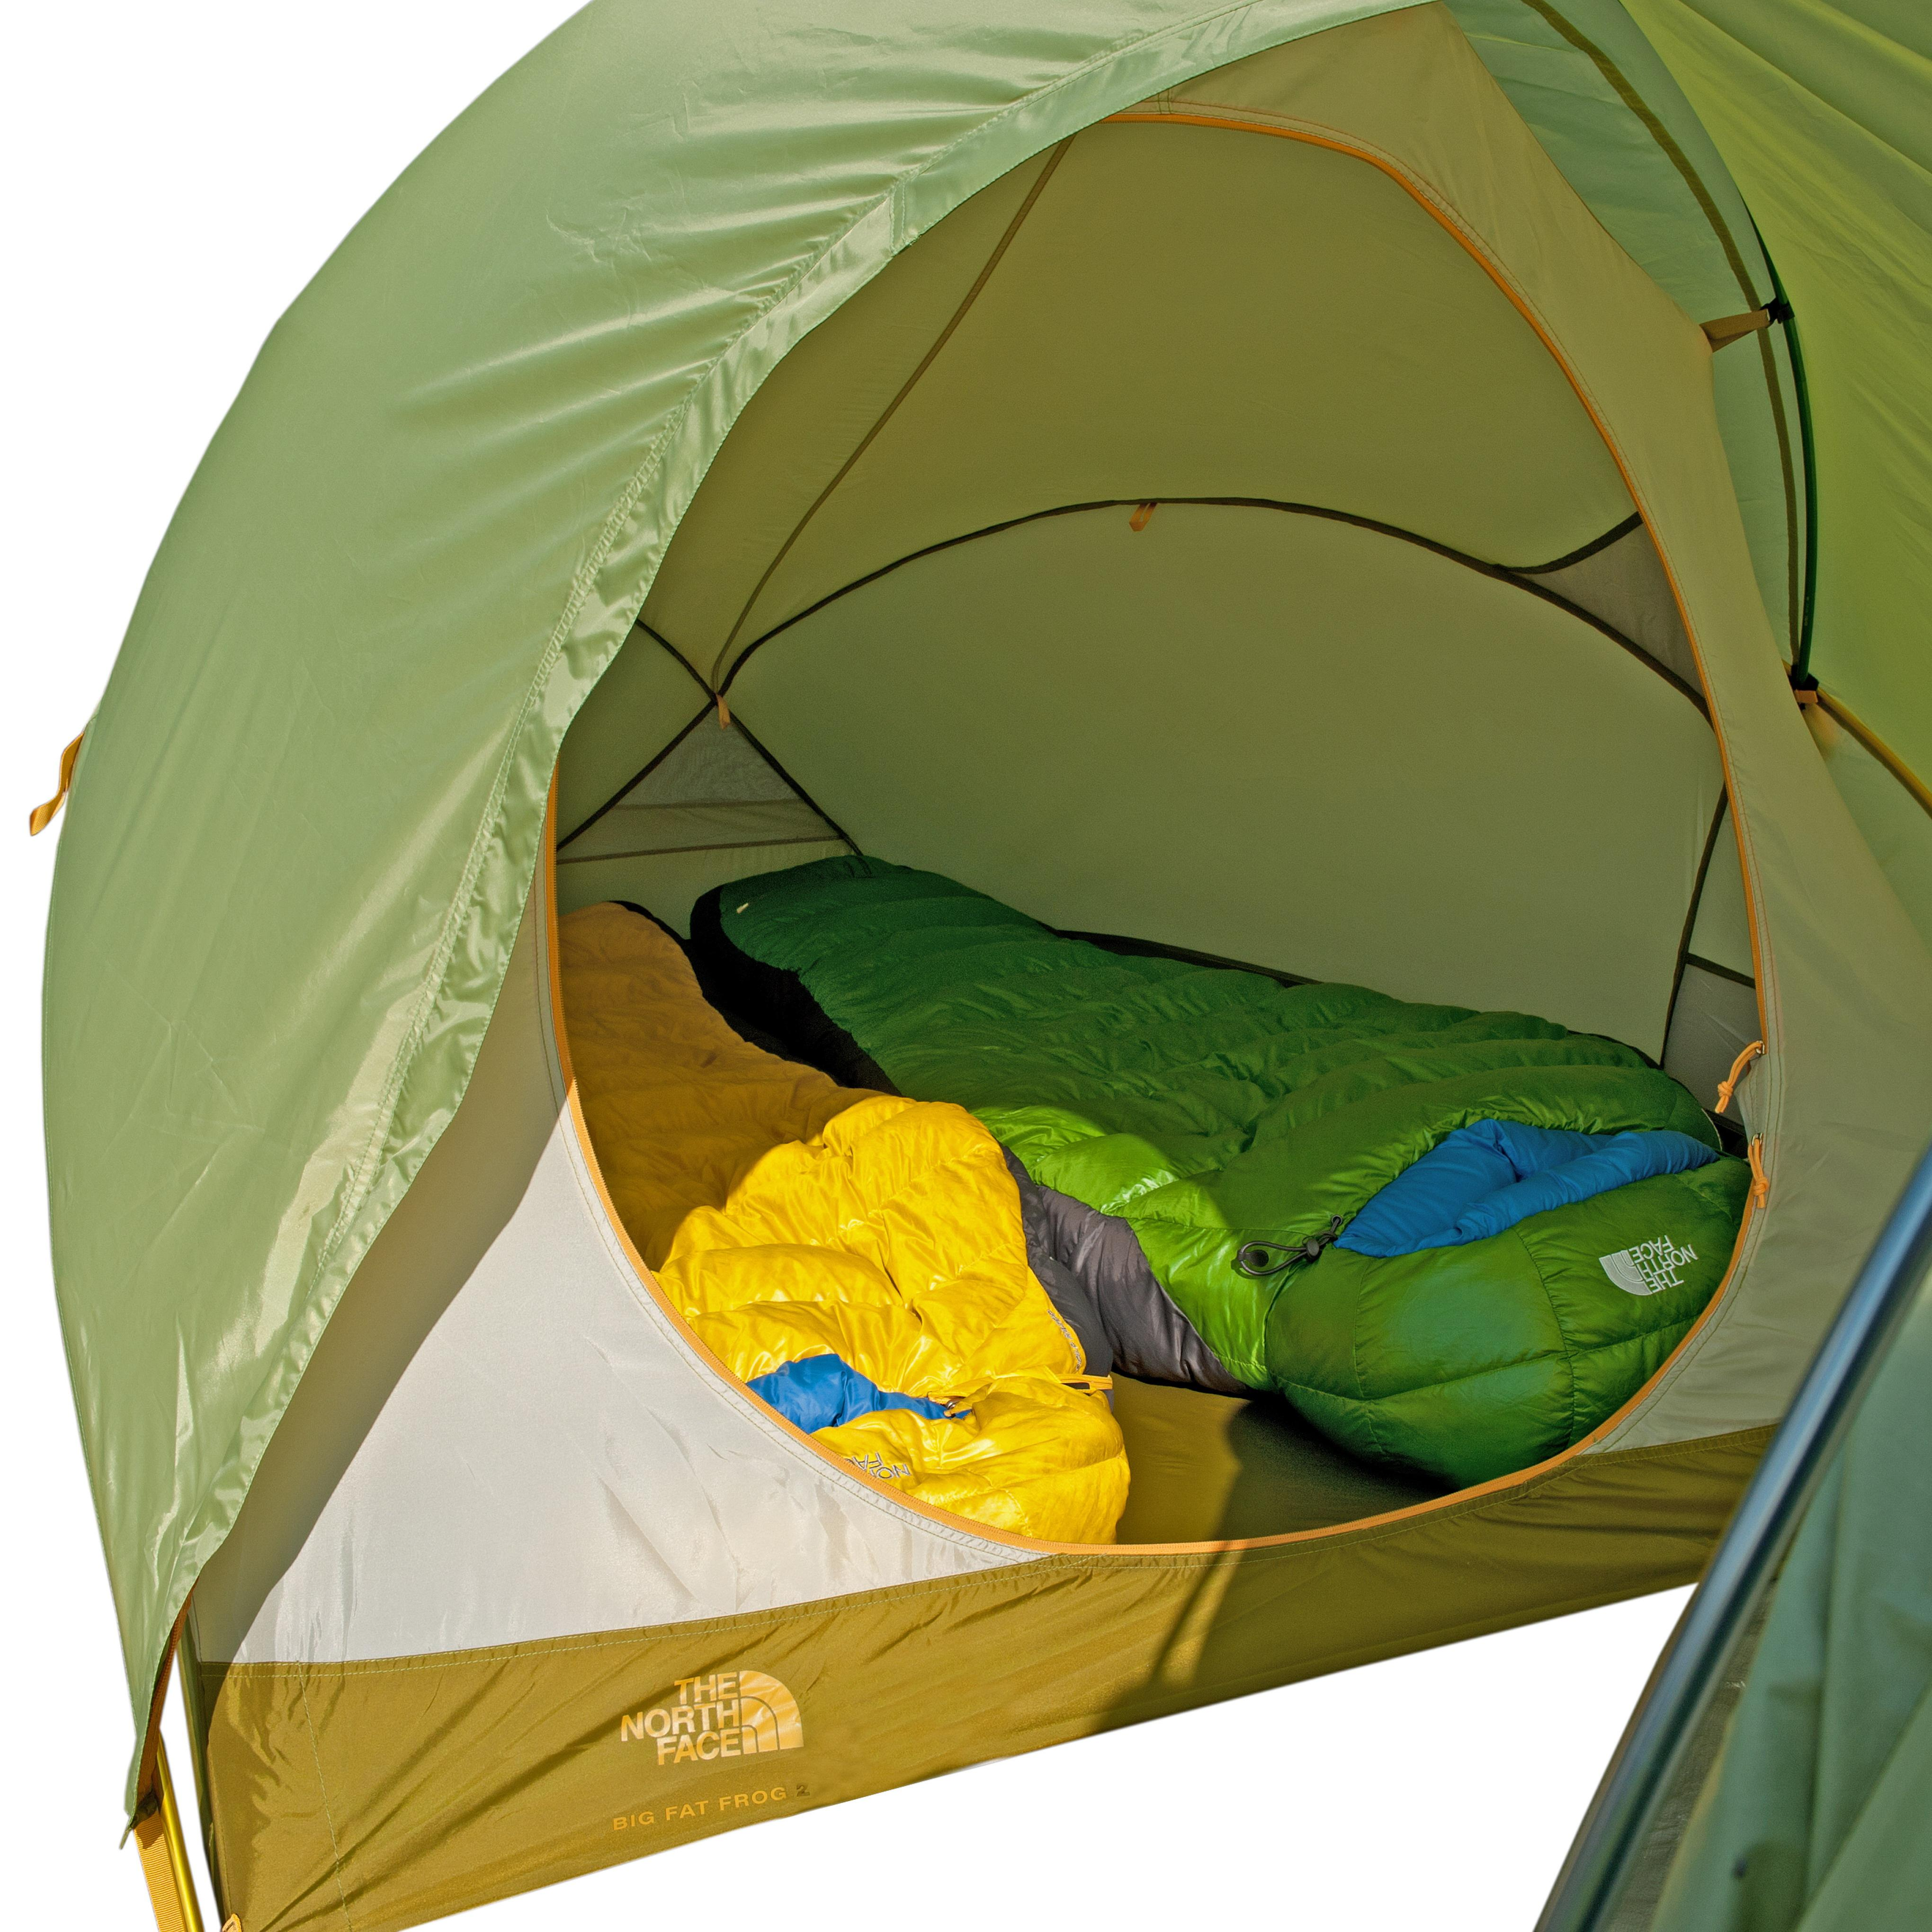 THE NORTH FACE Big Fat Frog 2 Man Tent & THE NORTH FACE Big Fat Frog 2 Man Tent | Blacks